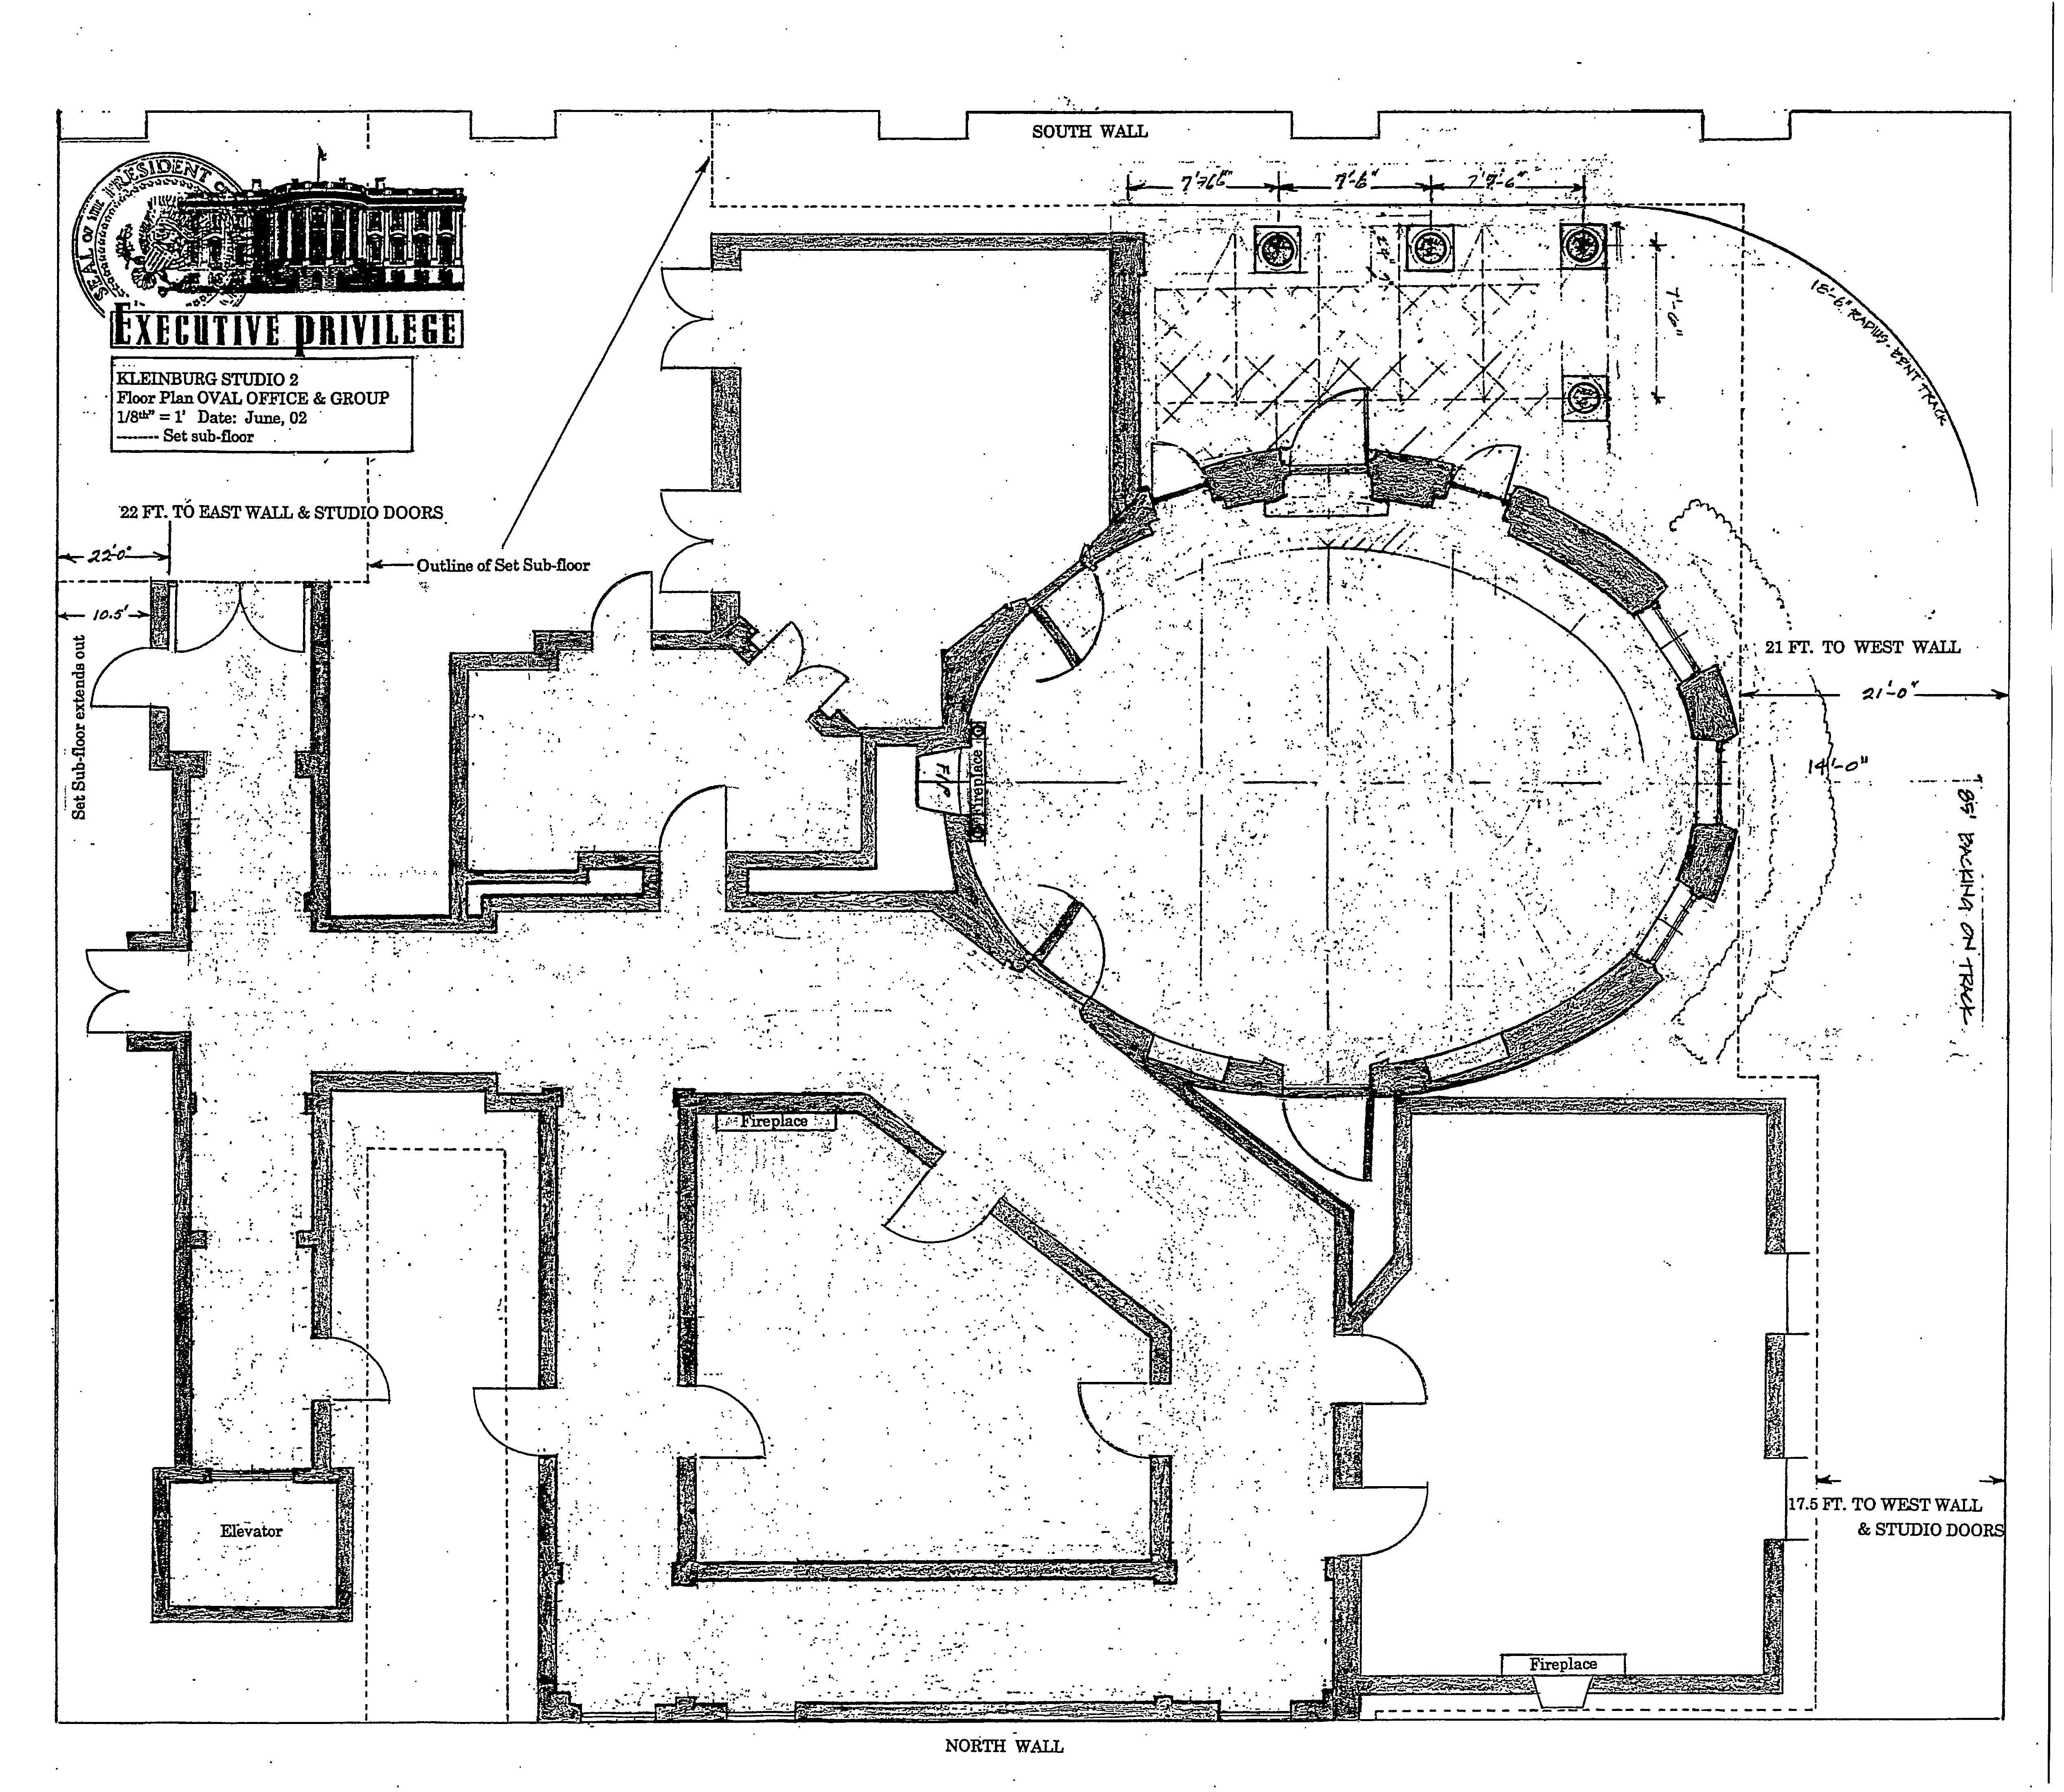 oval office floor plan. Oval Office Floor Plan Pinterest